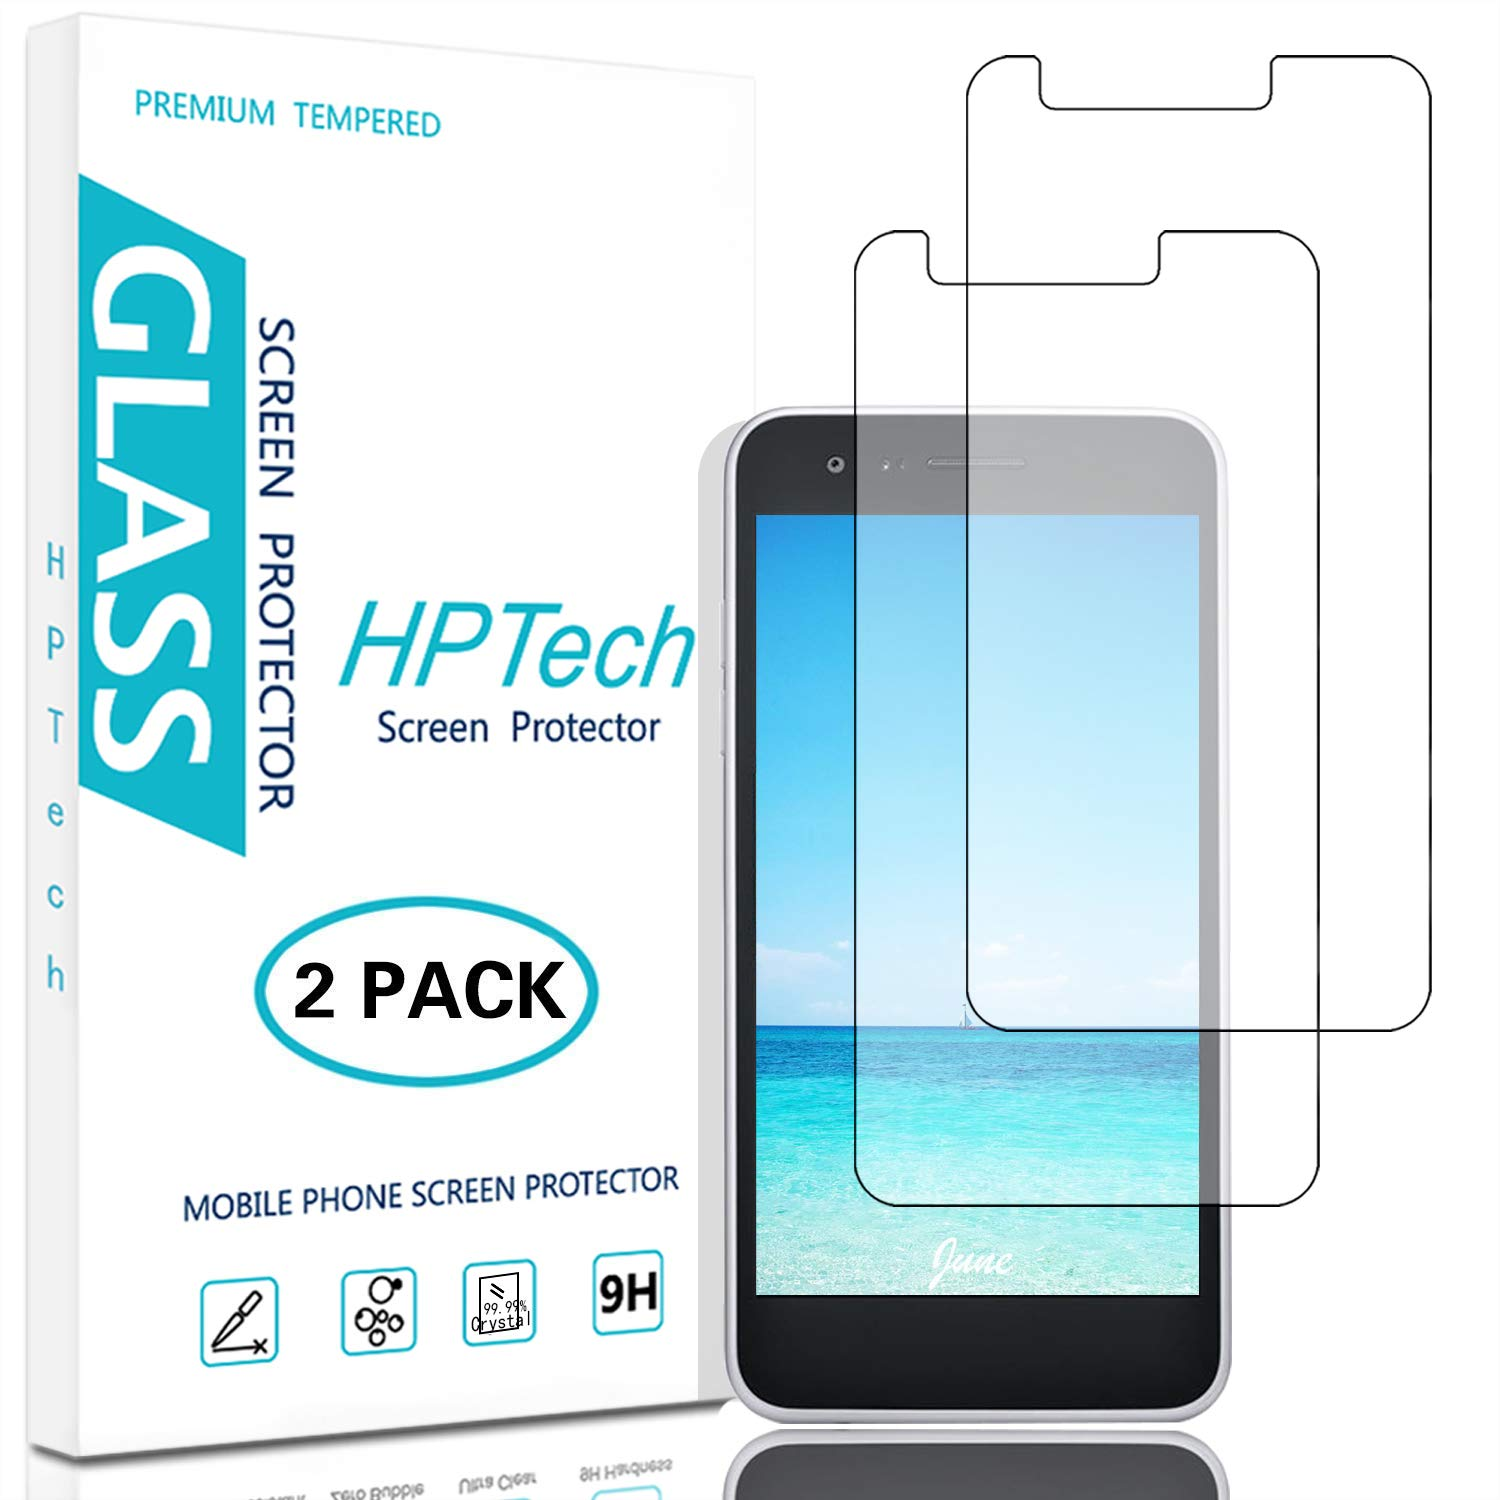 HPTech LG Rebel 4 LTE Screen Protector - (2-Pack) Tempered Glass Film for LG Rebel 4 LTE Easy to Install, Bubble Free with Lifetime Replacement Warranty